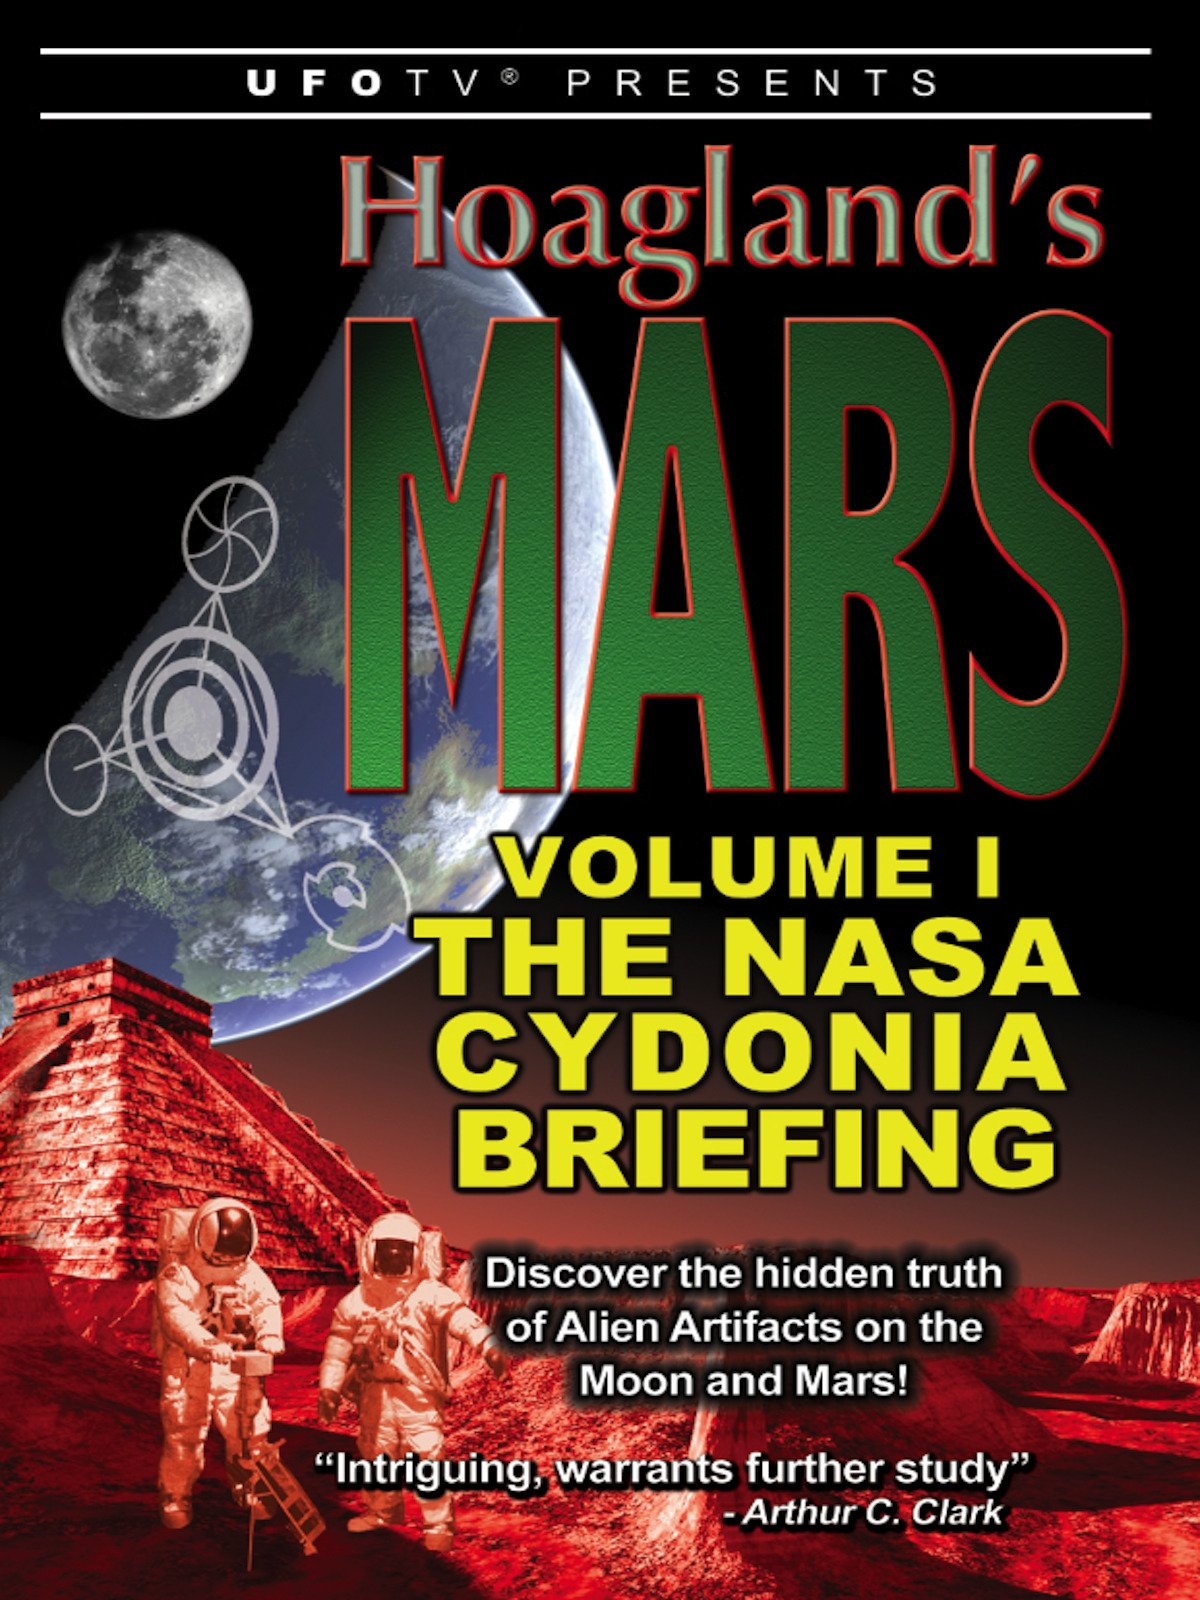 UFOTV Presents: Hoagland's Mars Part 1